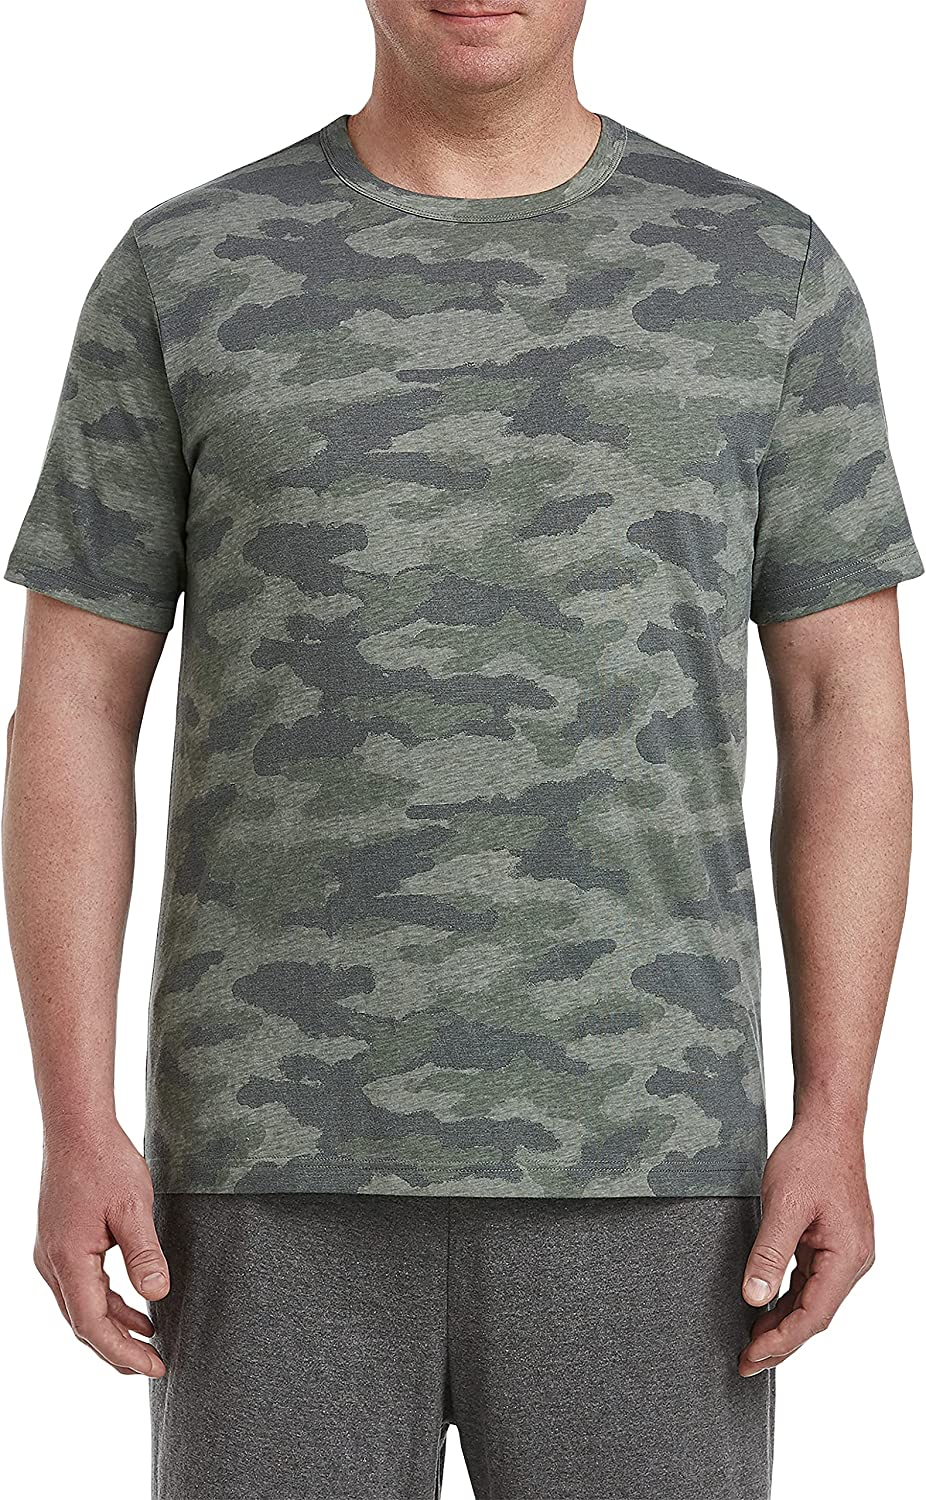 Harbor Bay by DXL Big and Tall Textured Camo Tee, Green Multi